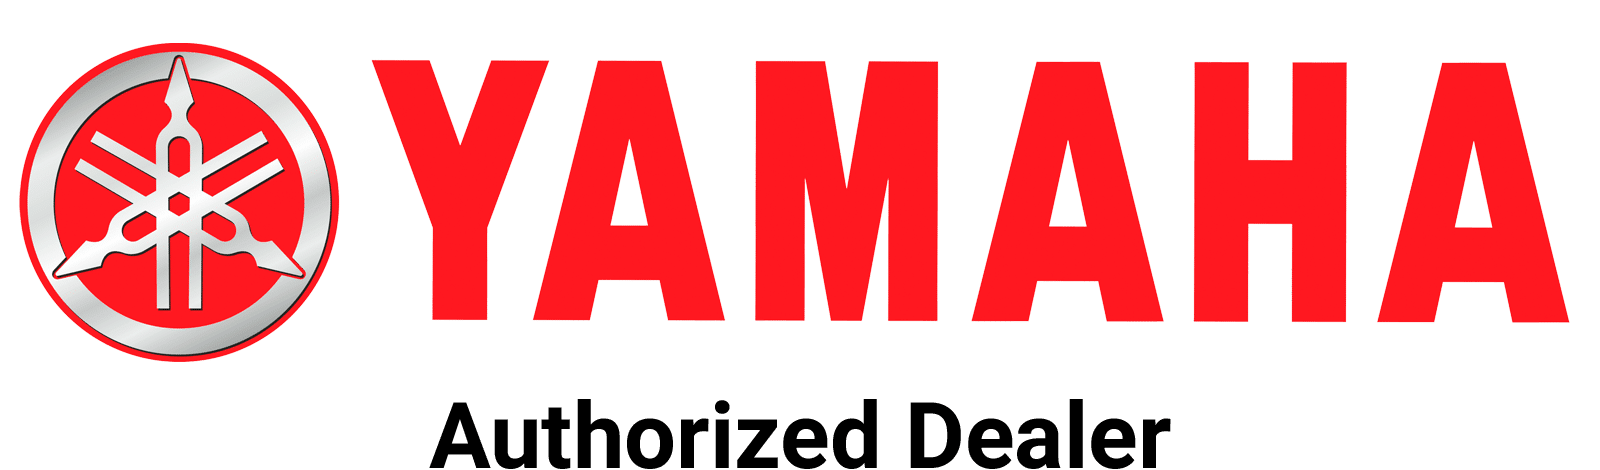 Yamaha-logo authorized